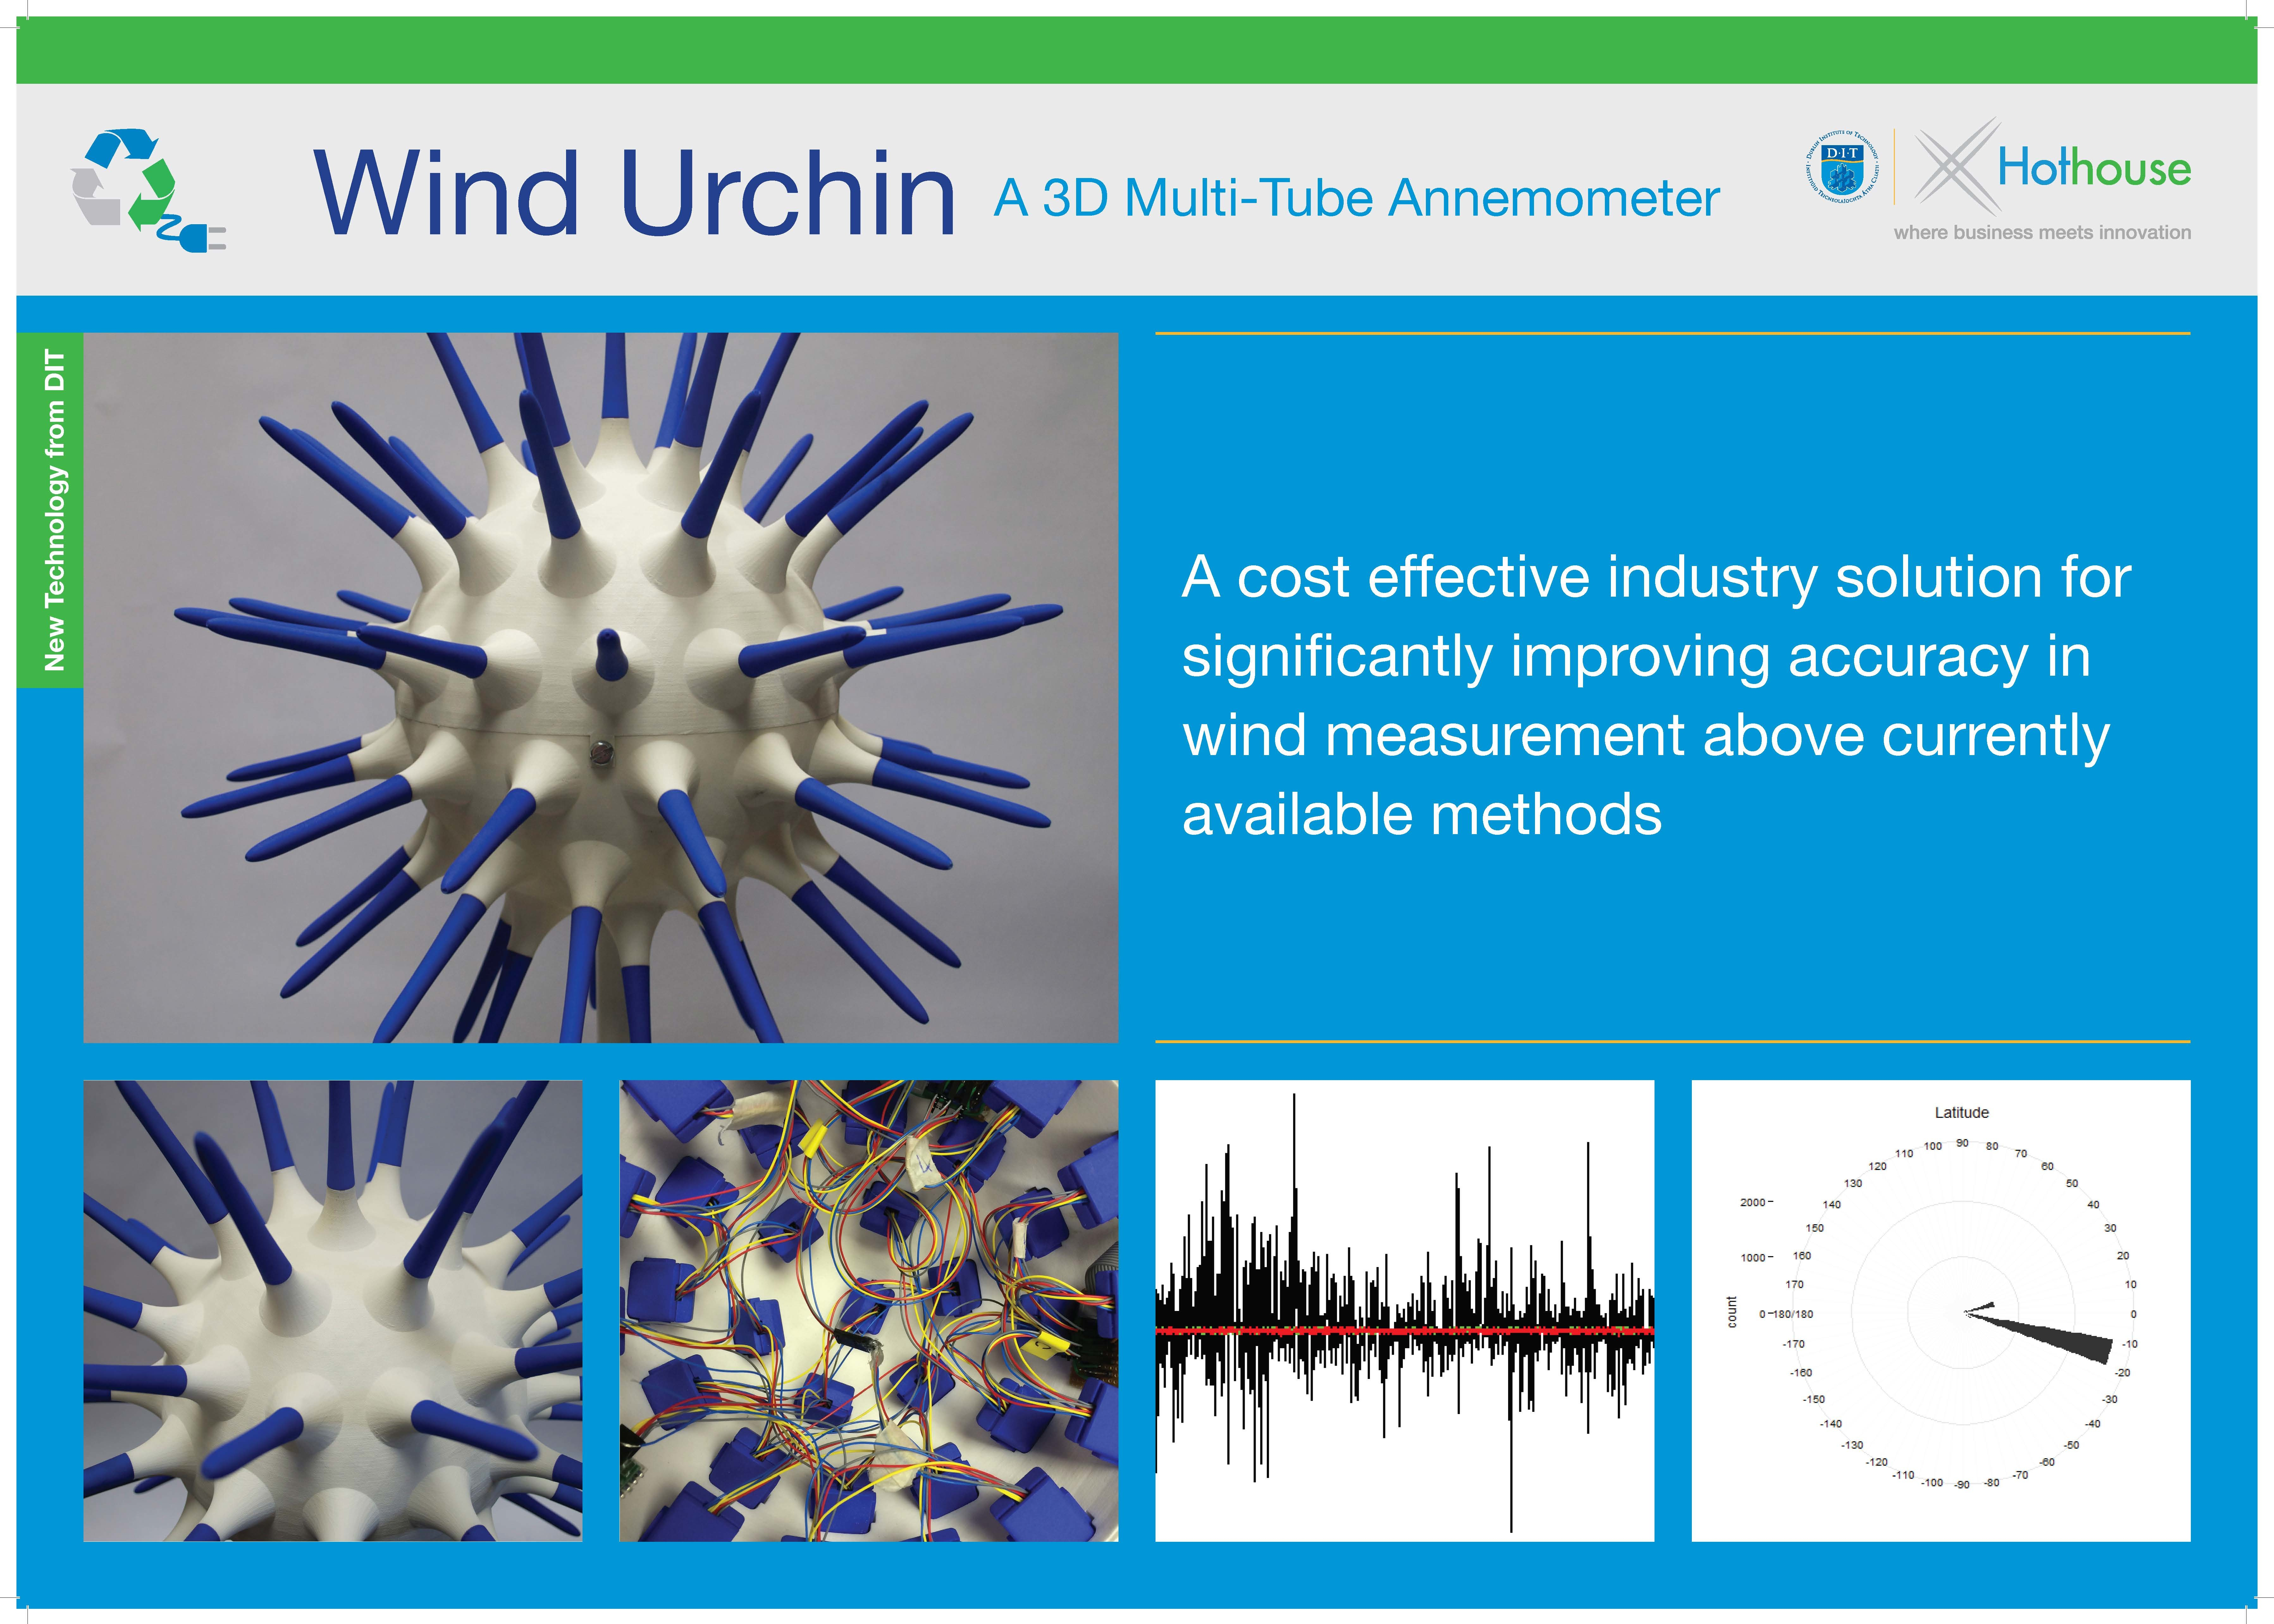 Wind Urchin: A 3D Spherical Anemometer